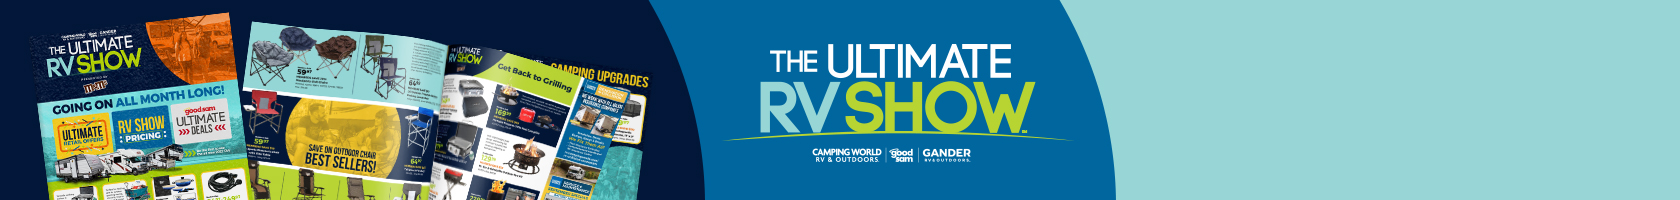 The Ultimate RV Show